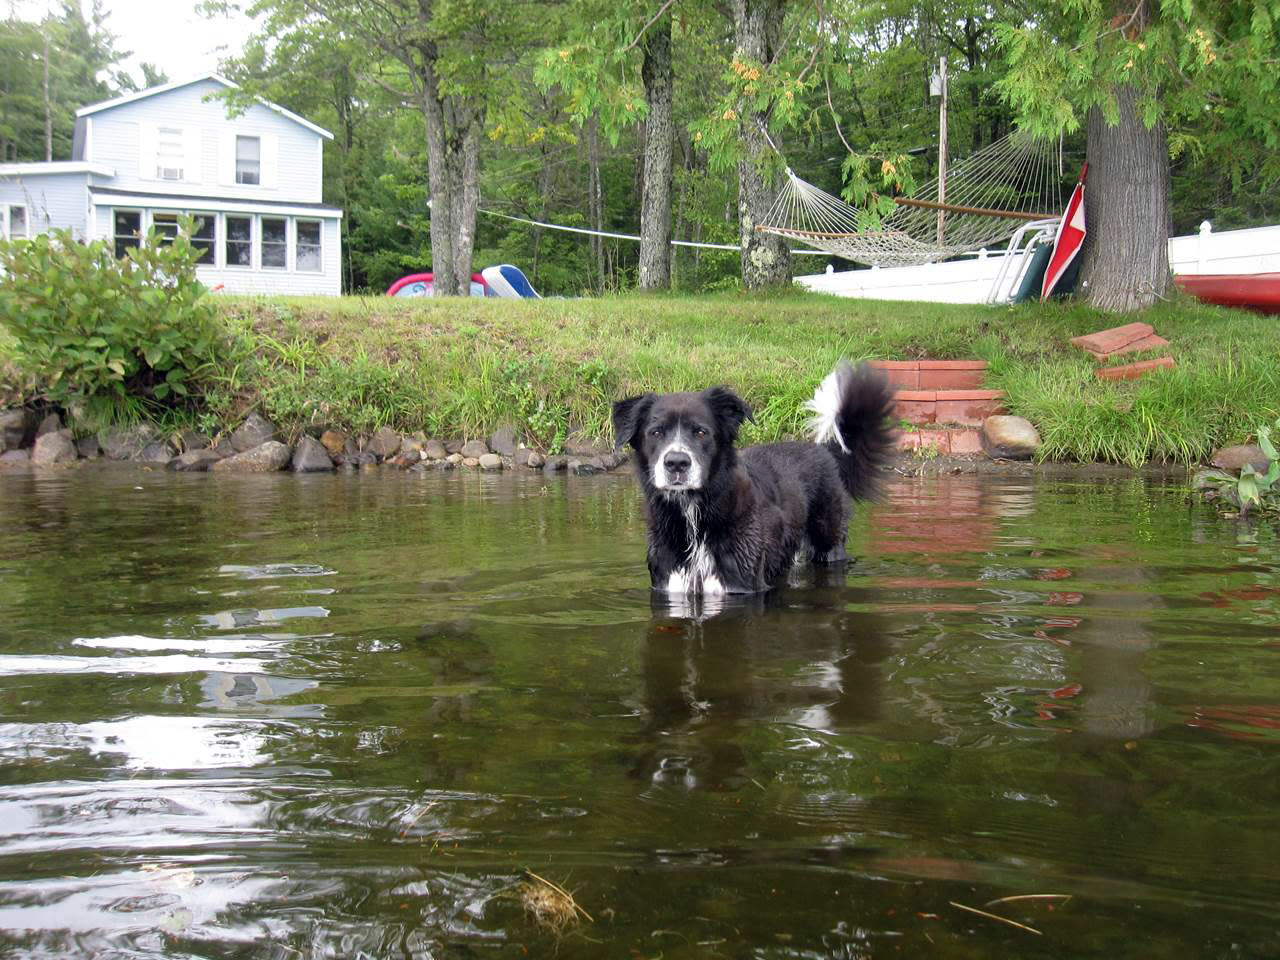 Did your dog get skunked? There's an easy household remedy